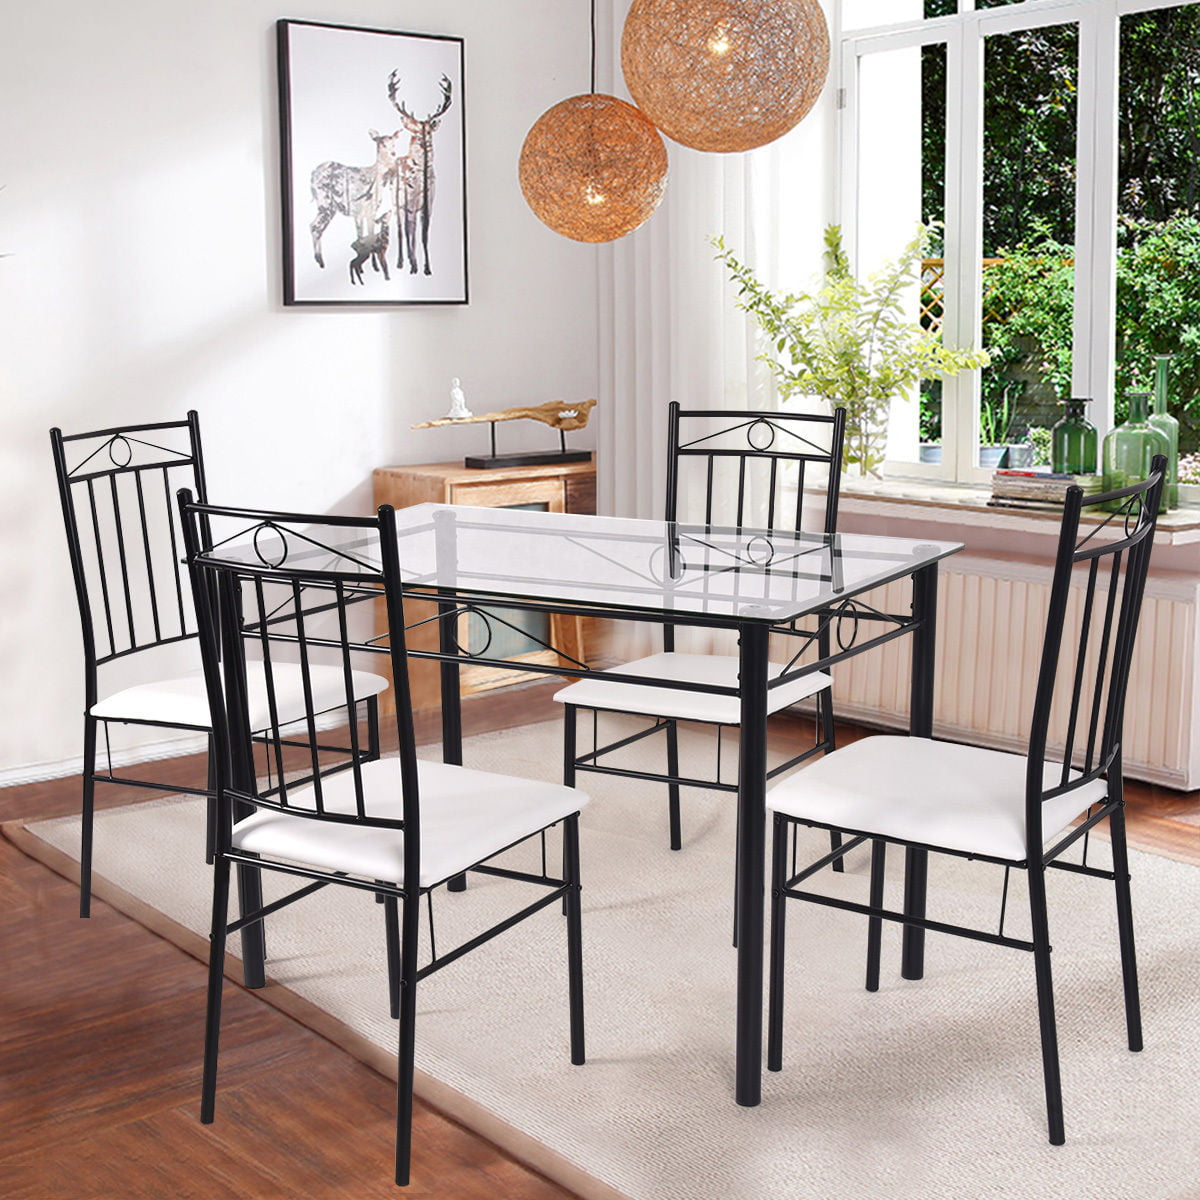 Costway 5 Piece Dining Set Glass Metal Table and 4 Chairs Kitchen Breakfast  Furniture - Walmart.com